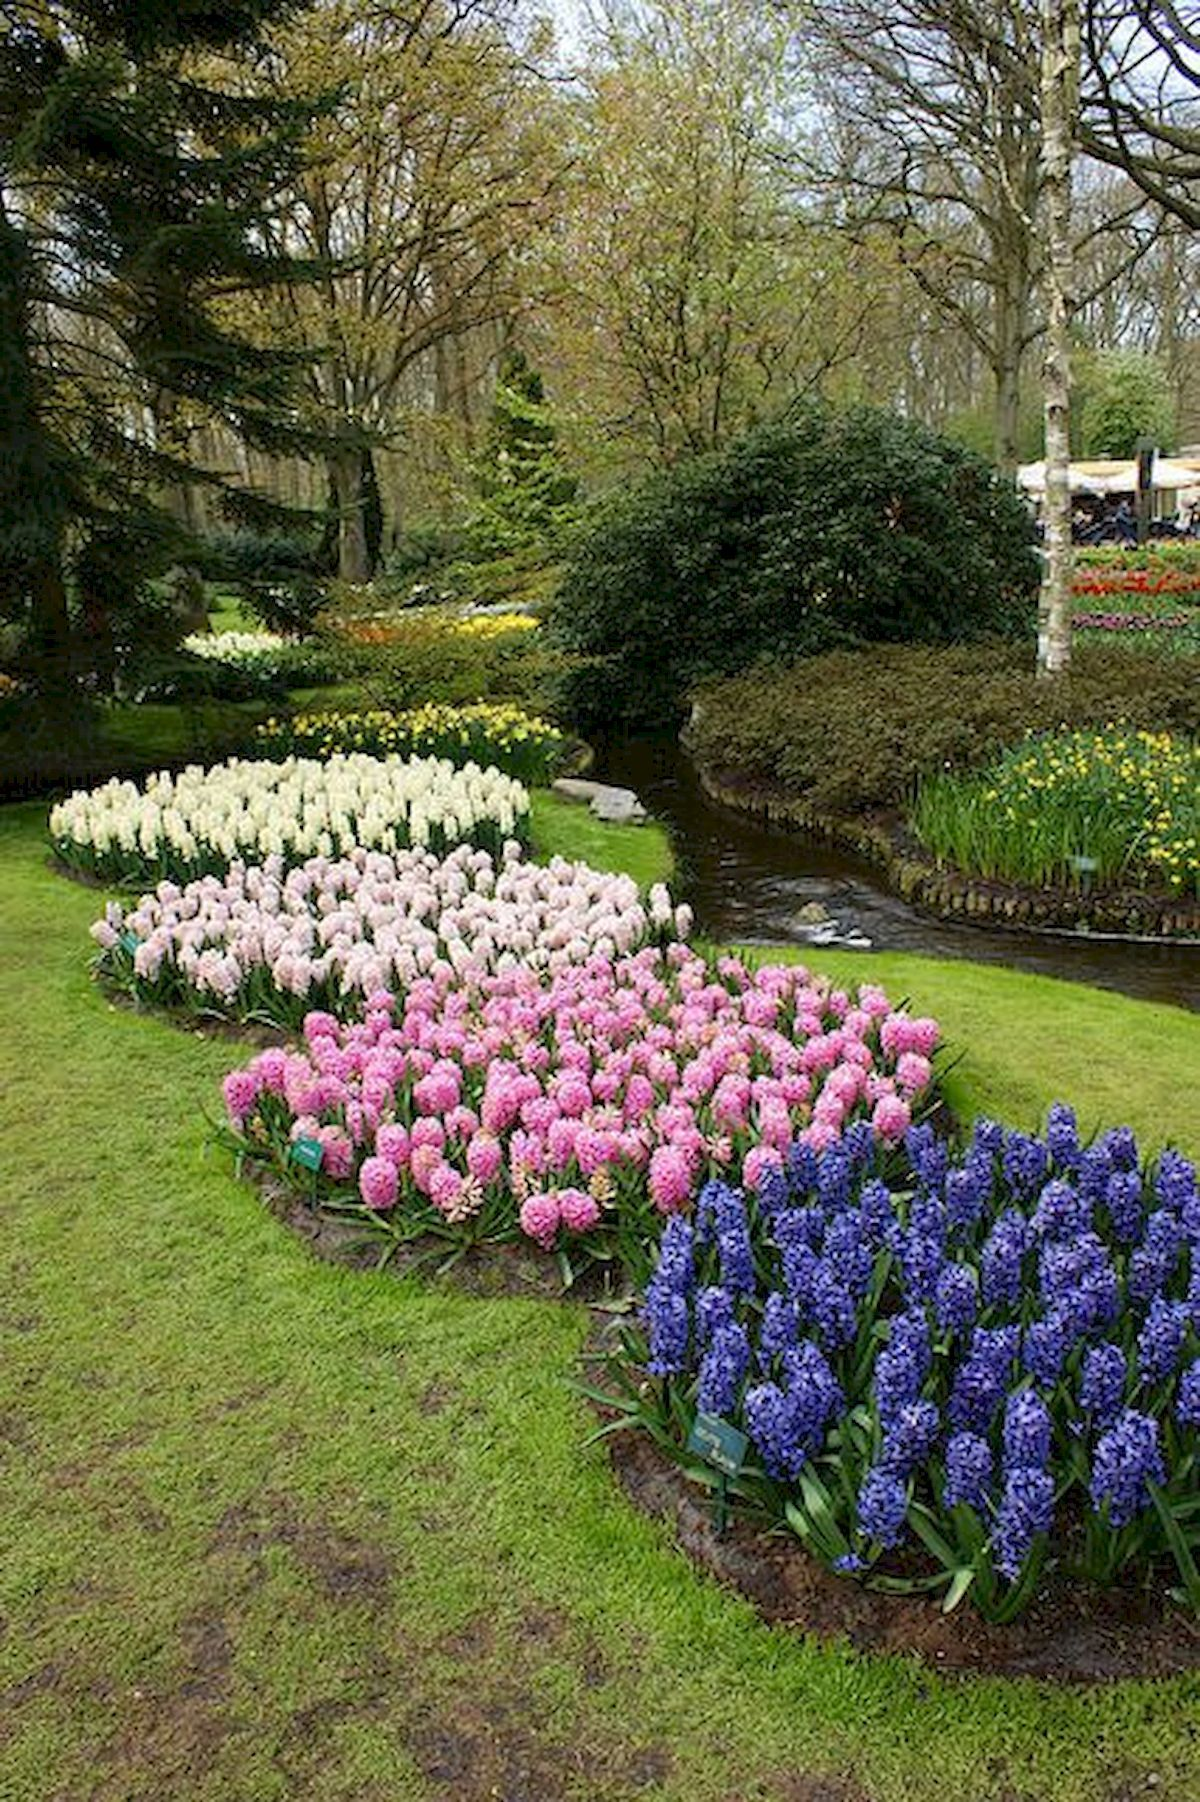 Beautyful and Creative Flower Bed Ideas to Try #flowerbeds